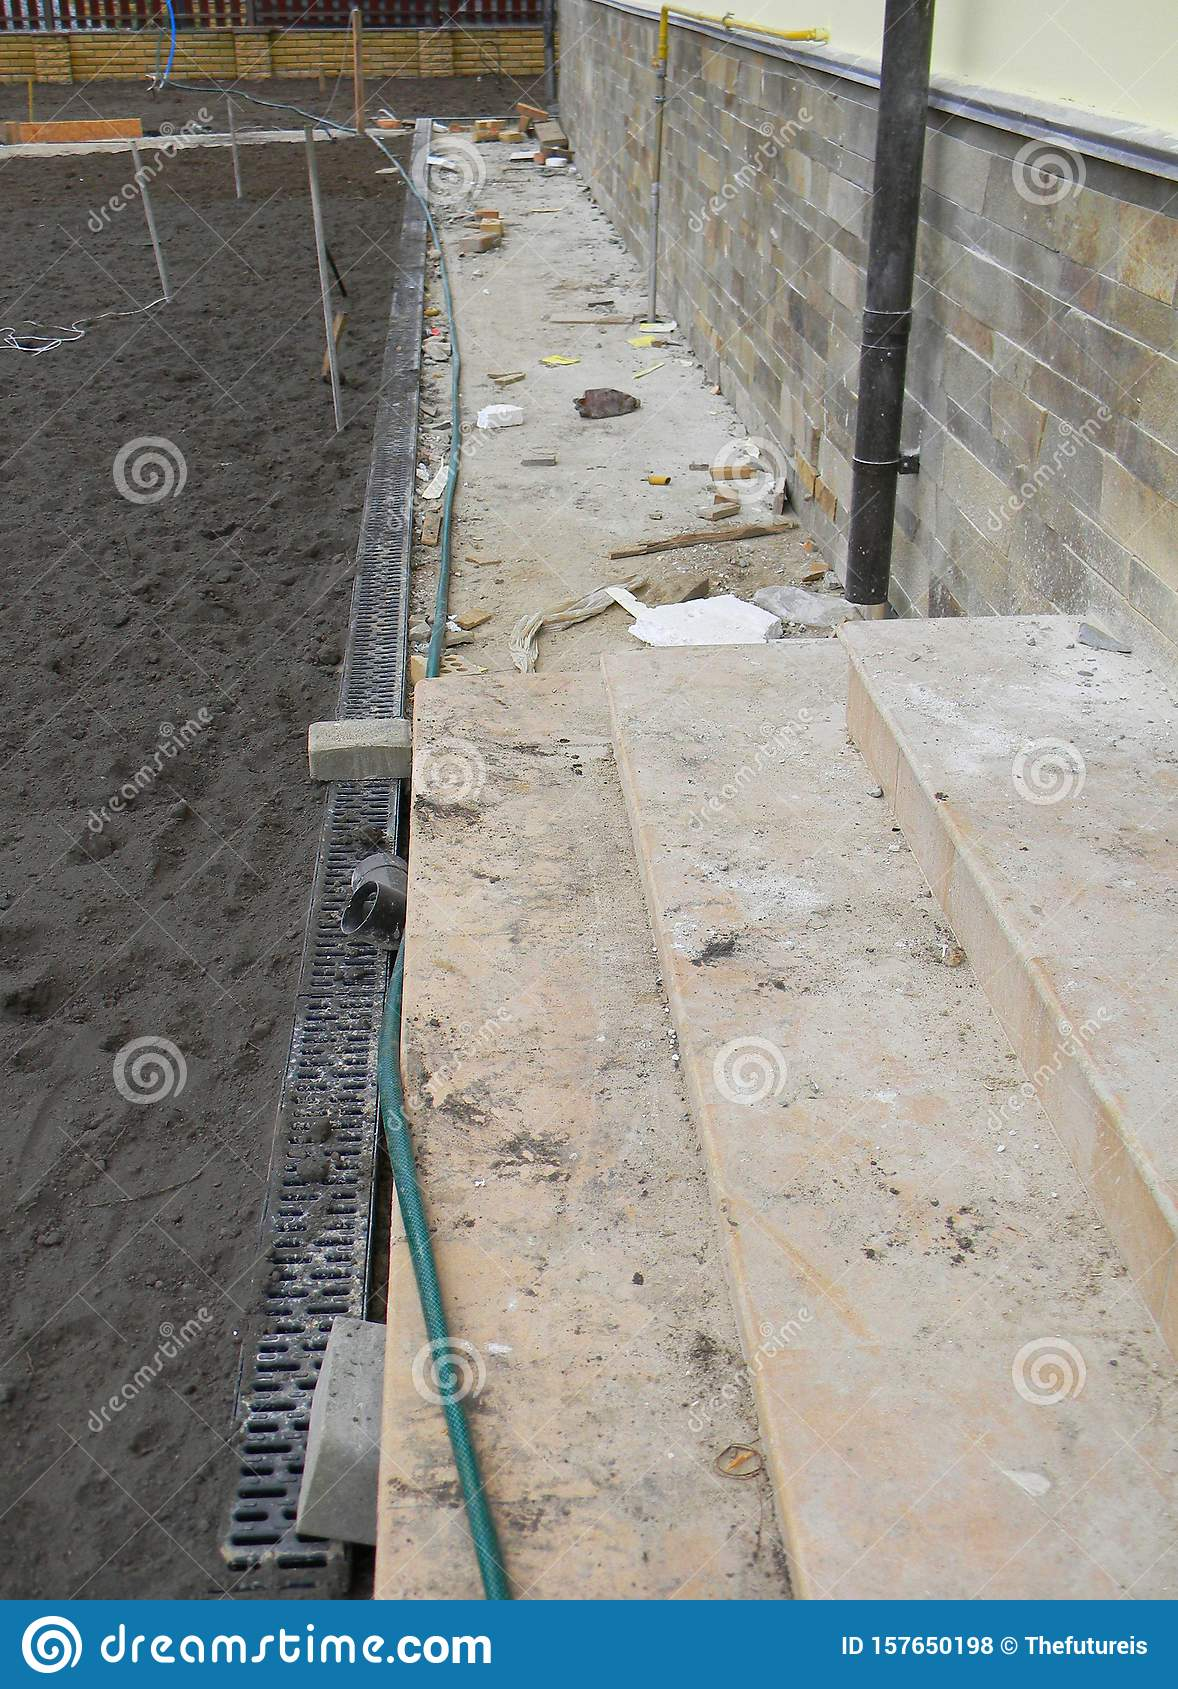 Concrete Pathway Under Construction With Rainwater Drainage System For House Foundation Wall Waterproofing Protection Stock Photo Image Of Downspout Incomplete 157650198